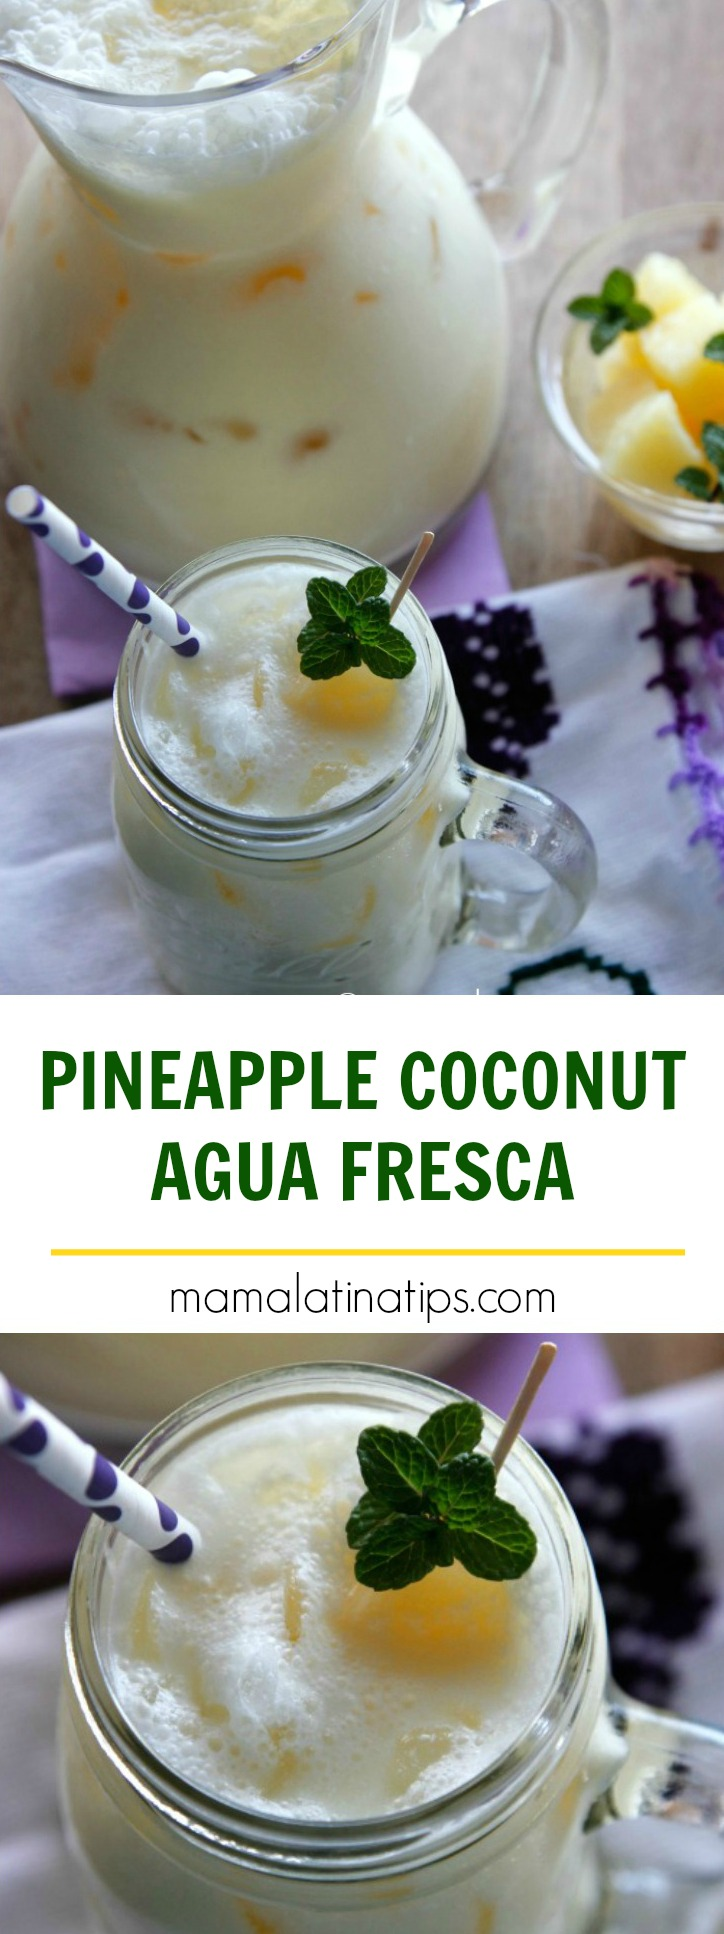 The easiest Pineapple-Coconut agua fresca ever! You just need 3 ingredients to make it any time of the year. Fast, easy and delicious try it out!